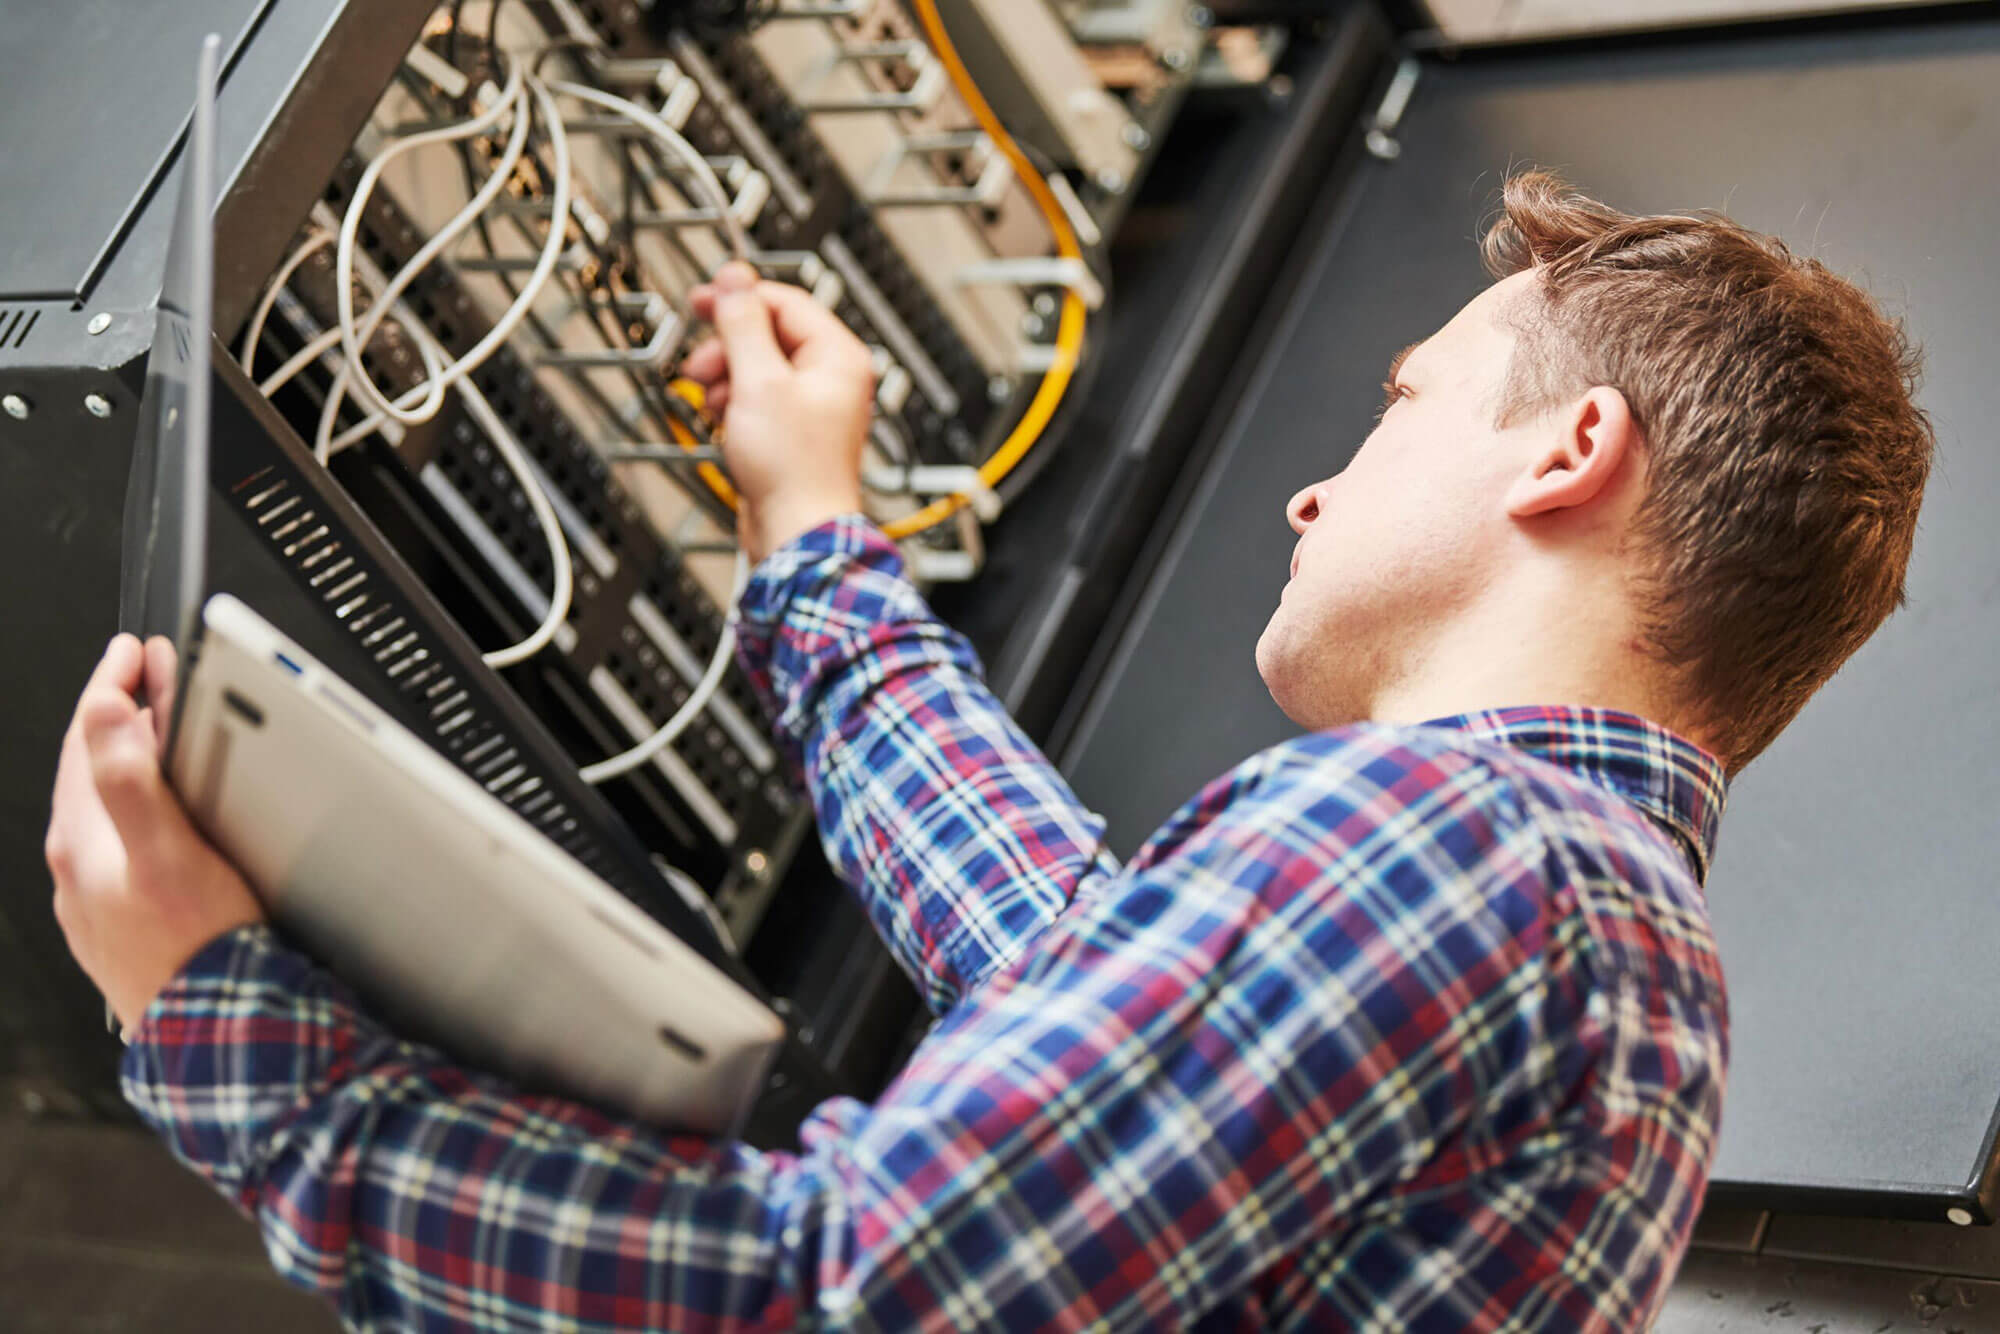 man plugging cables into server rack